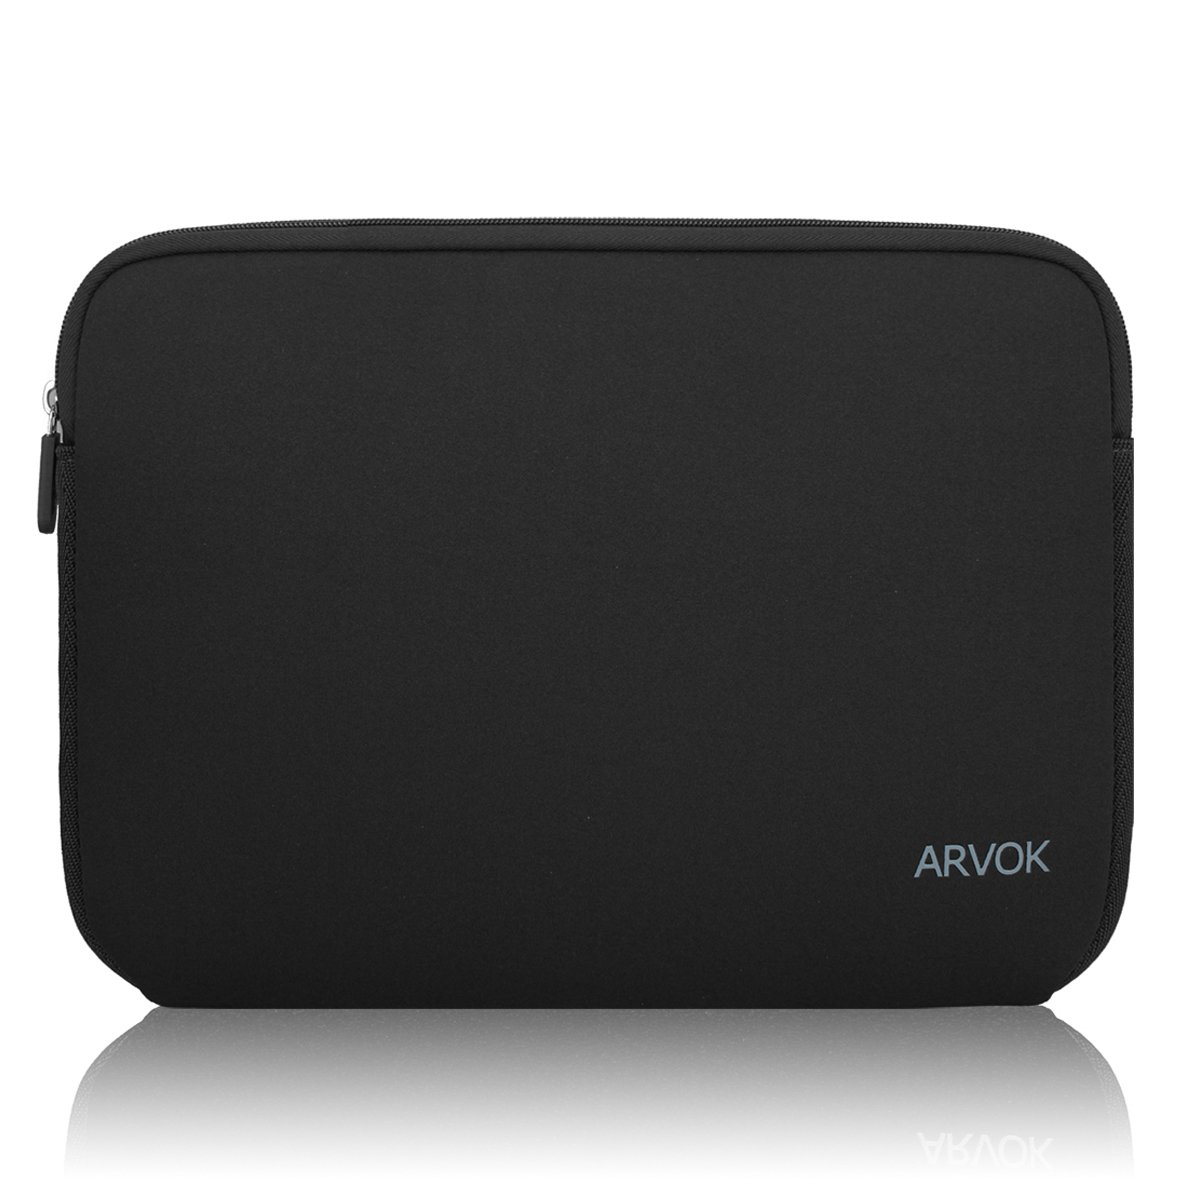 Arvok 13-14 Inch Laptop Sleeve Multi-color & Size Choices Case/Water-resistant Neoprene Notebook Computer Pocket Tablet Carrying Bag Cover, Black